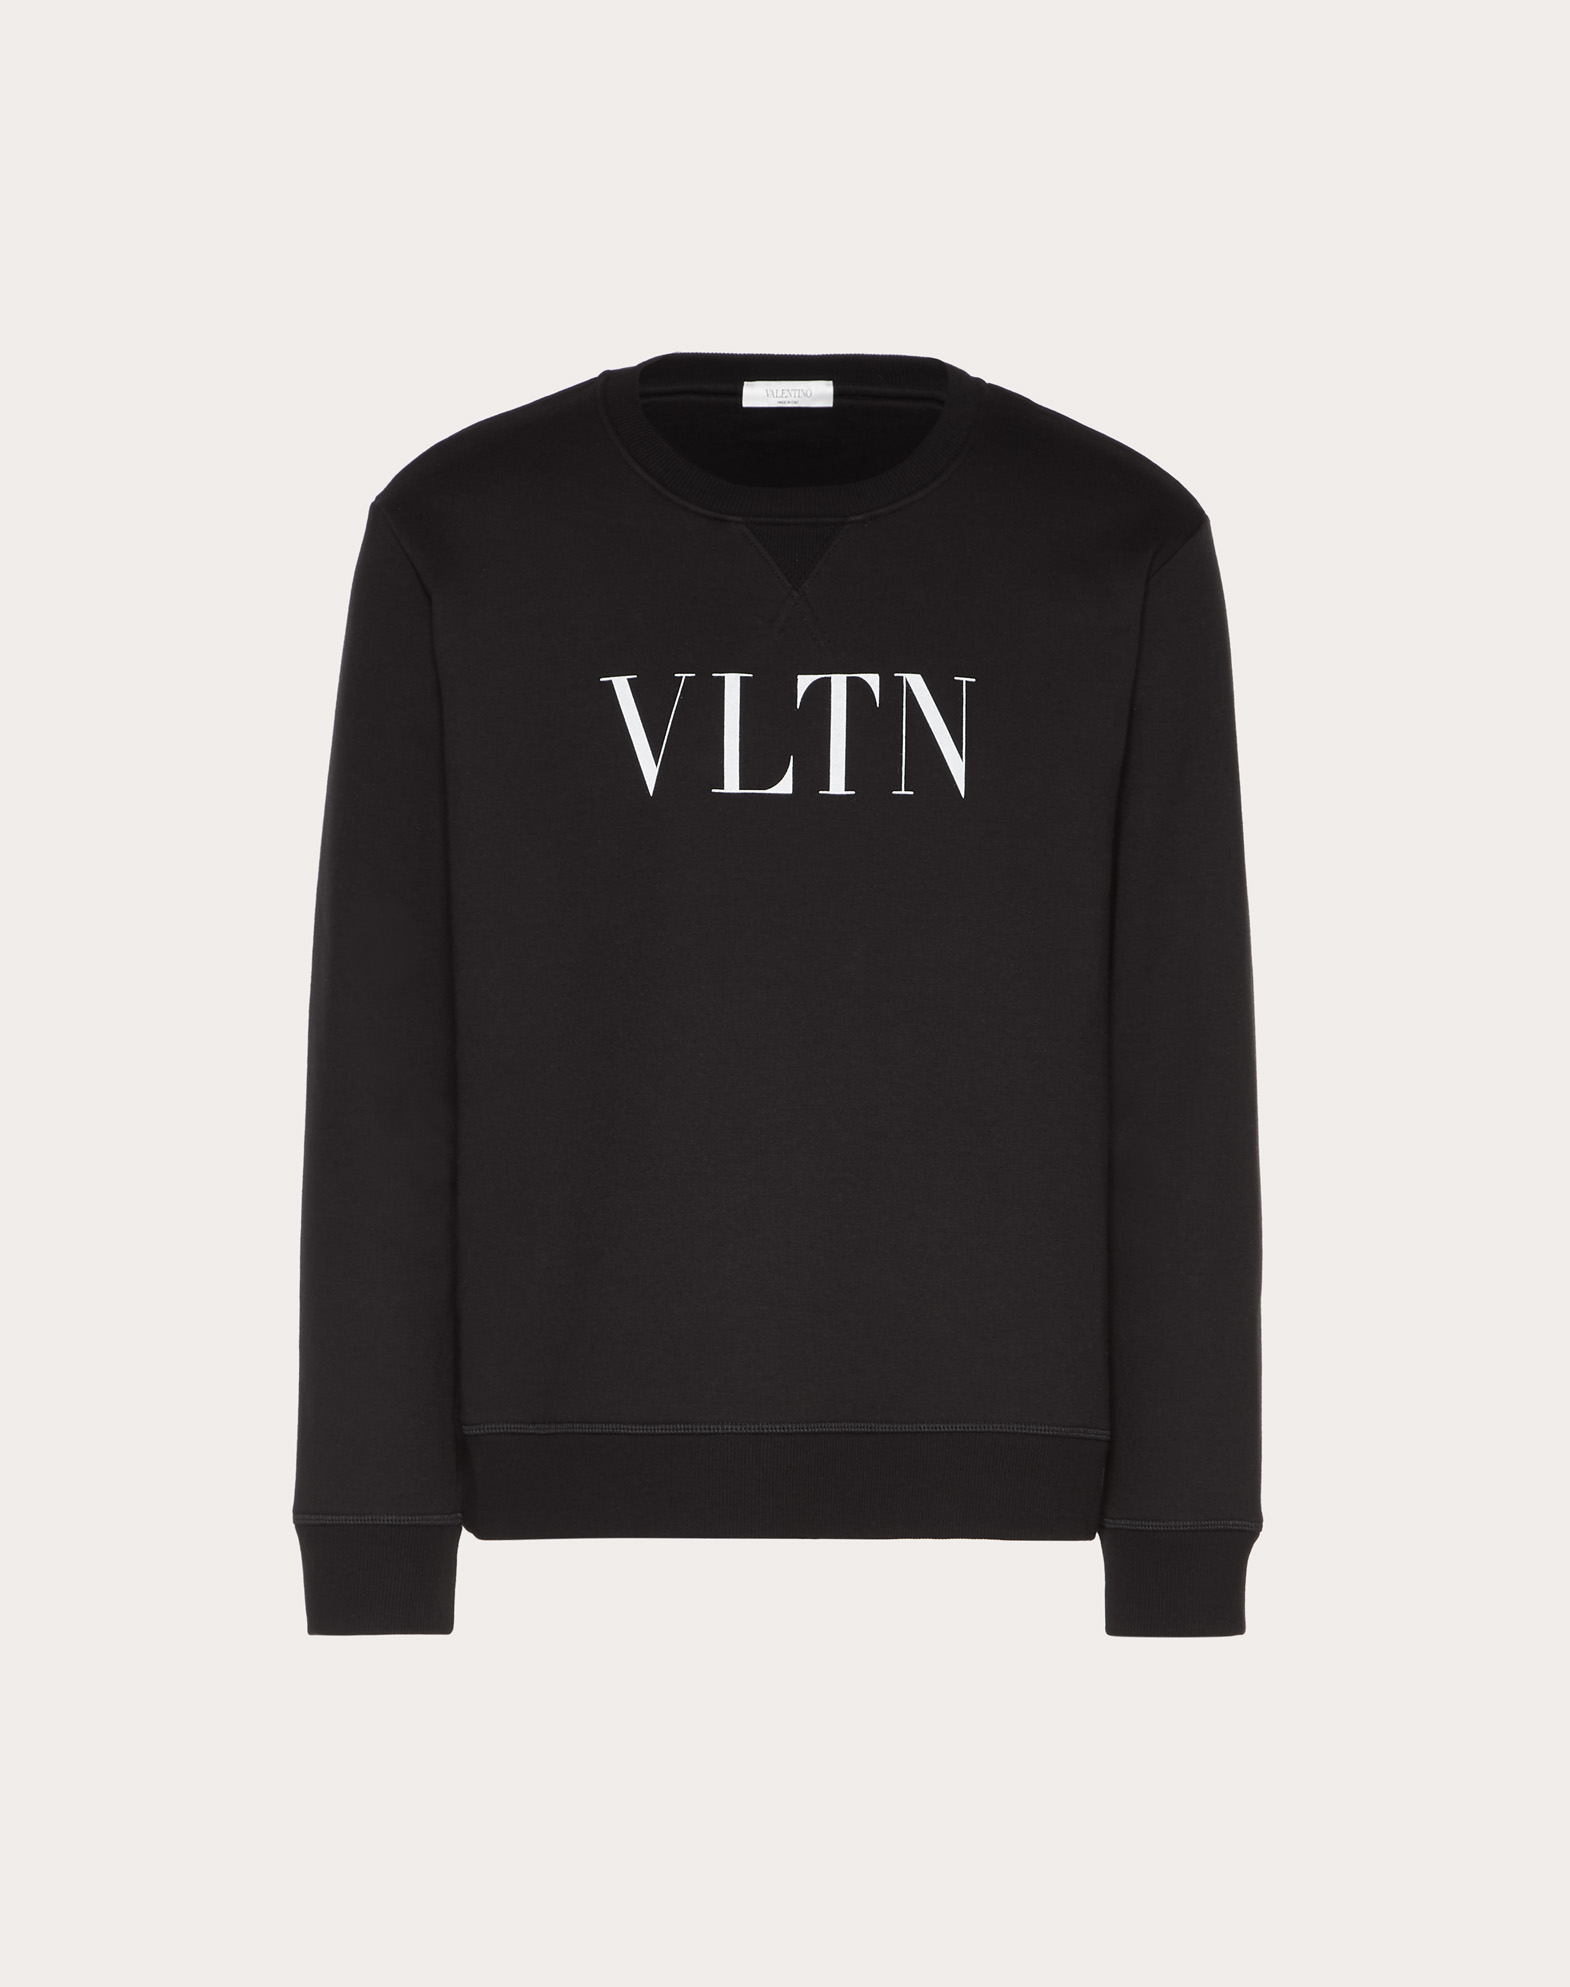 VLTN CREW NECK SWEATSHIRT